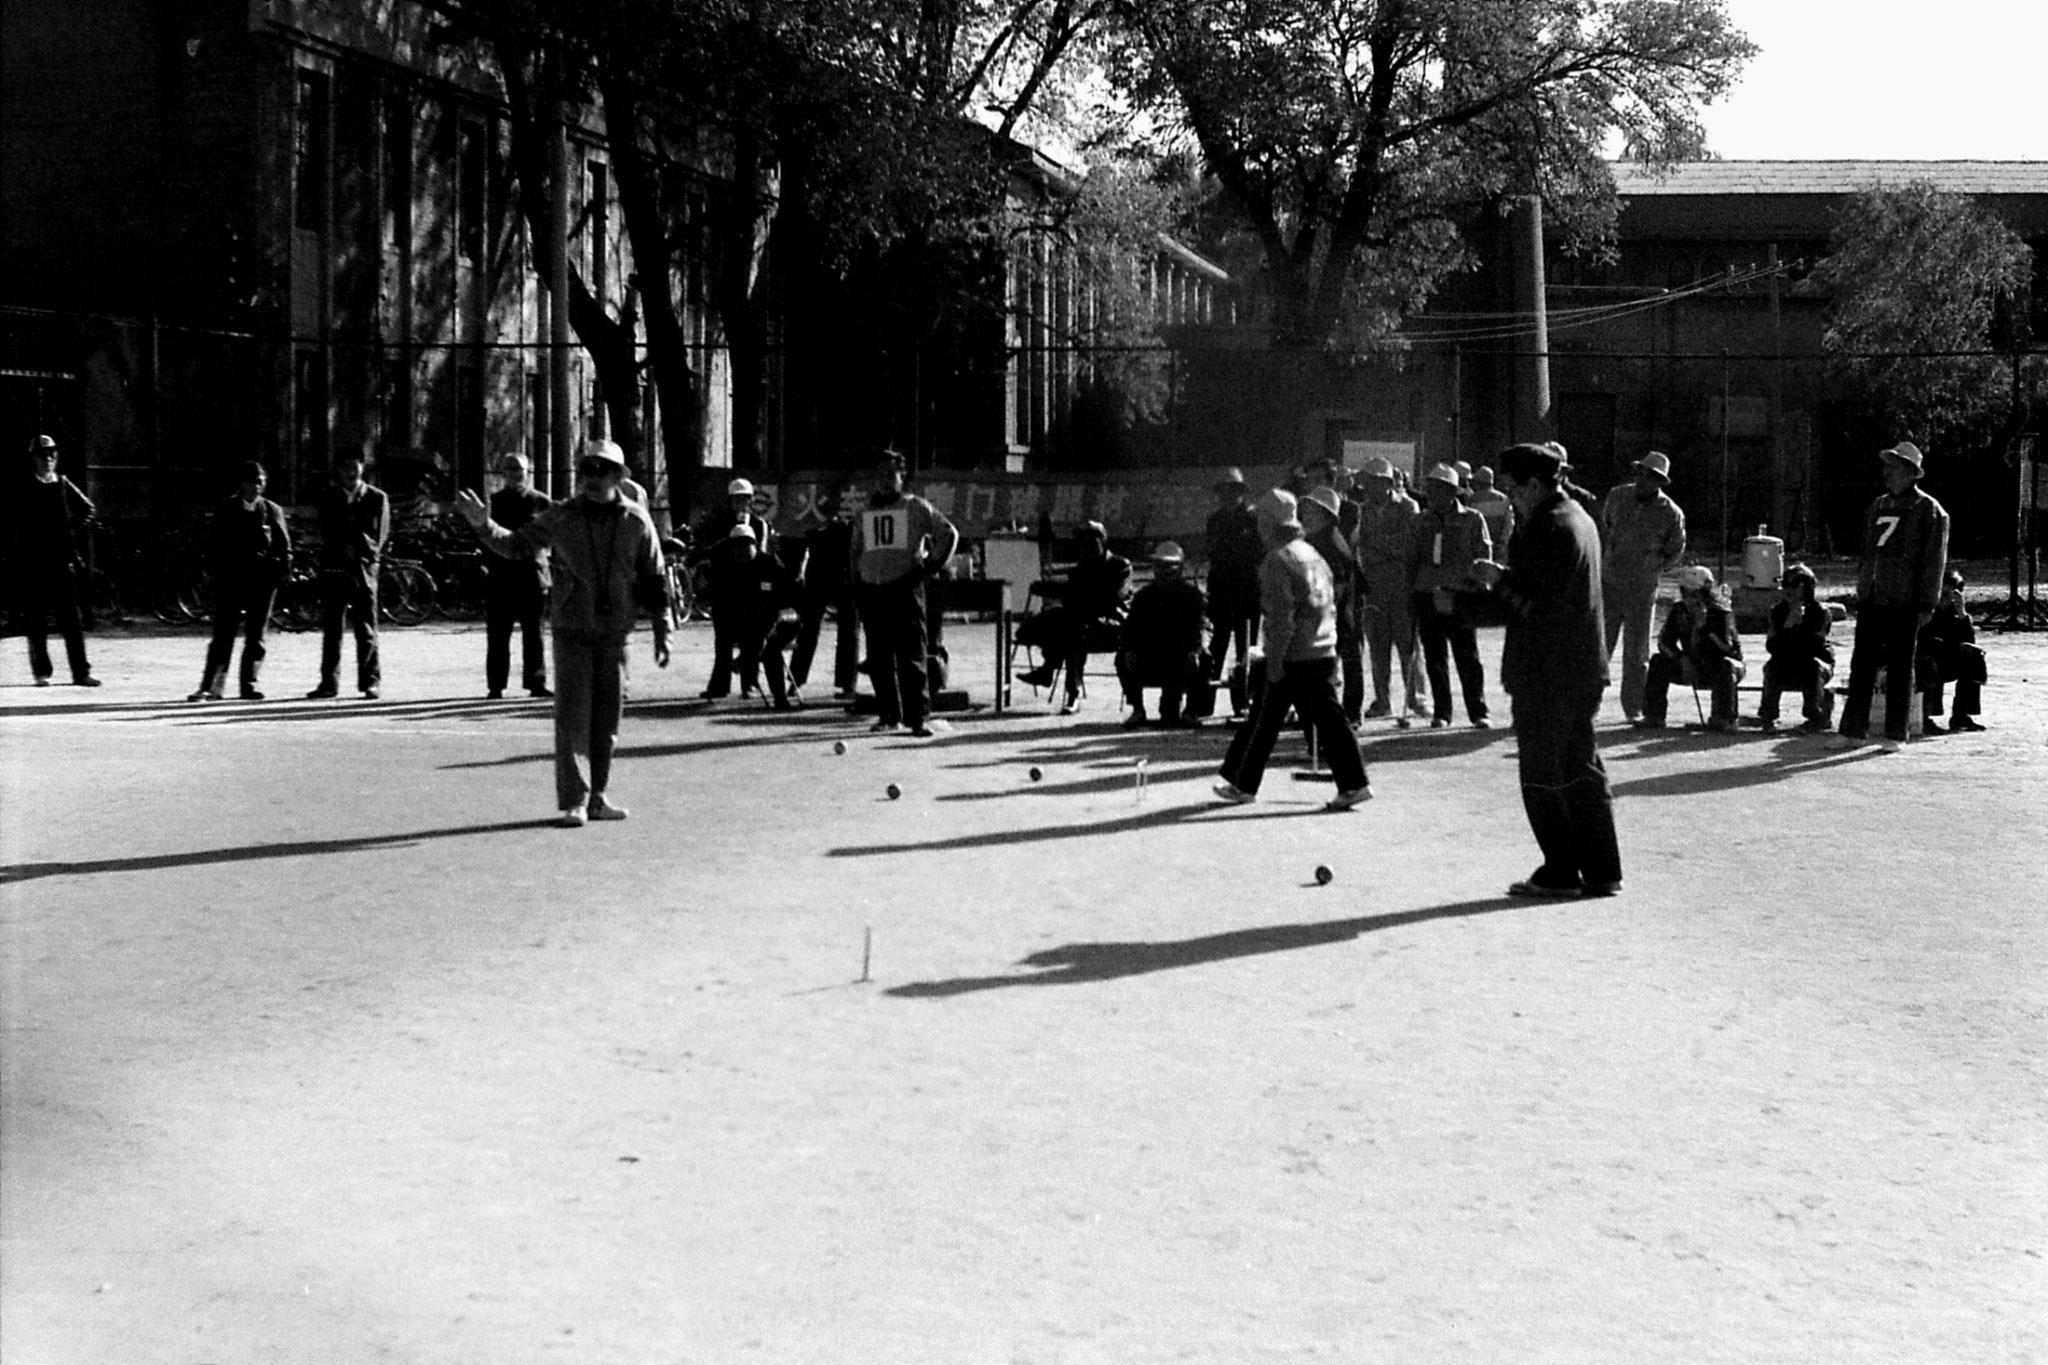 5/11/1988: 25: Beijing Inst Tech. Gate Ball game